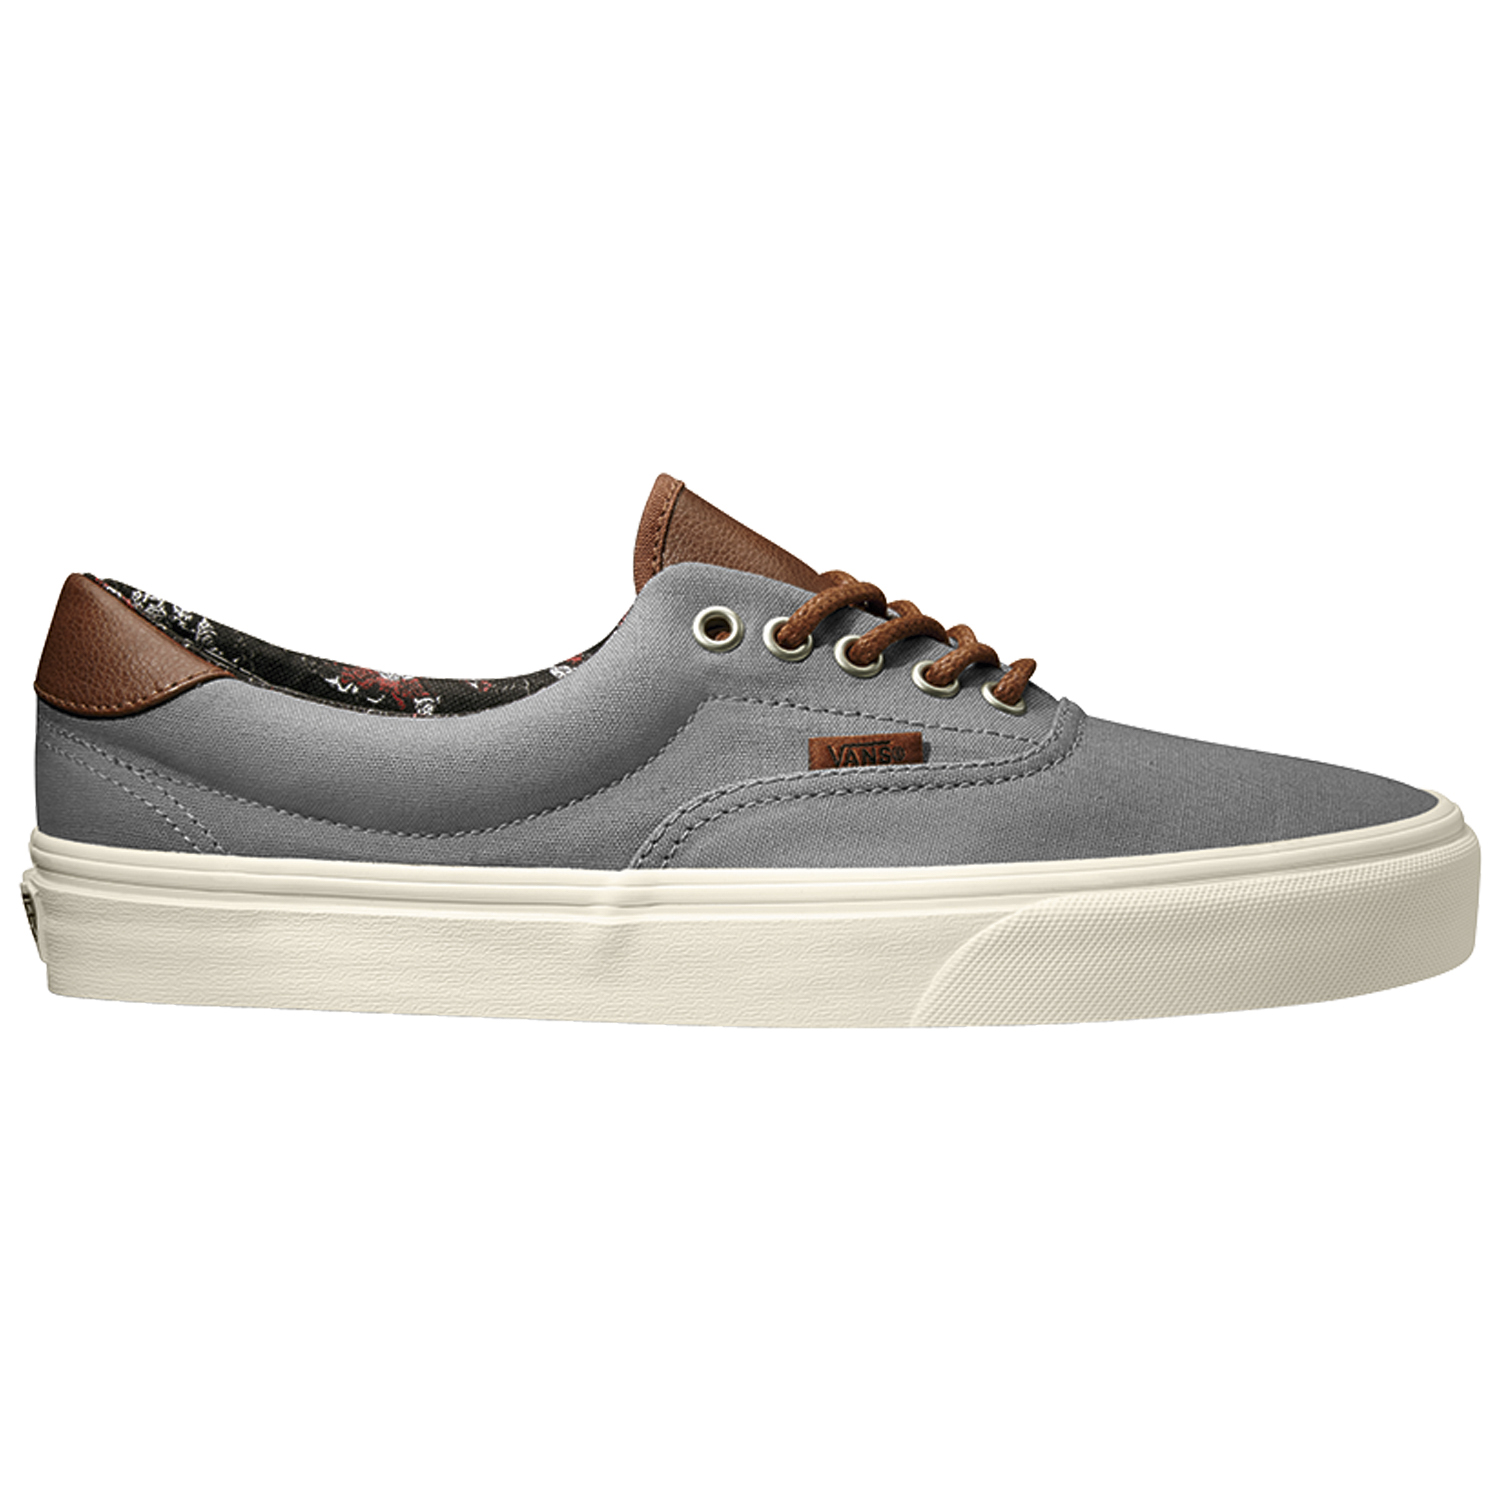 vans-era-59-samurai-warrior-frost-grey-119-90